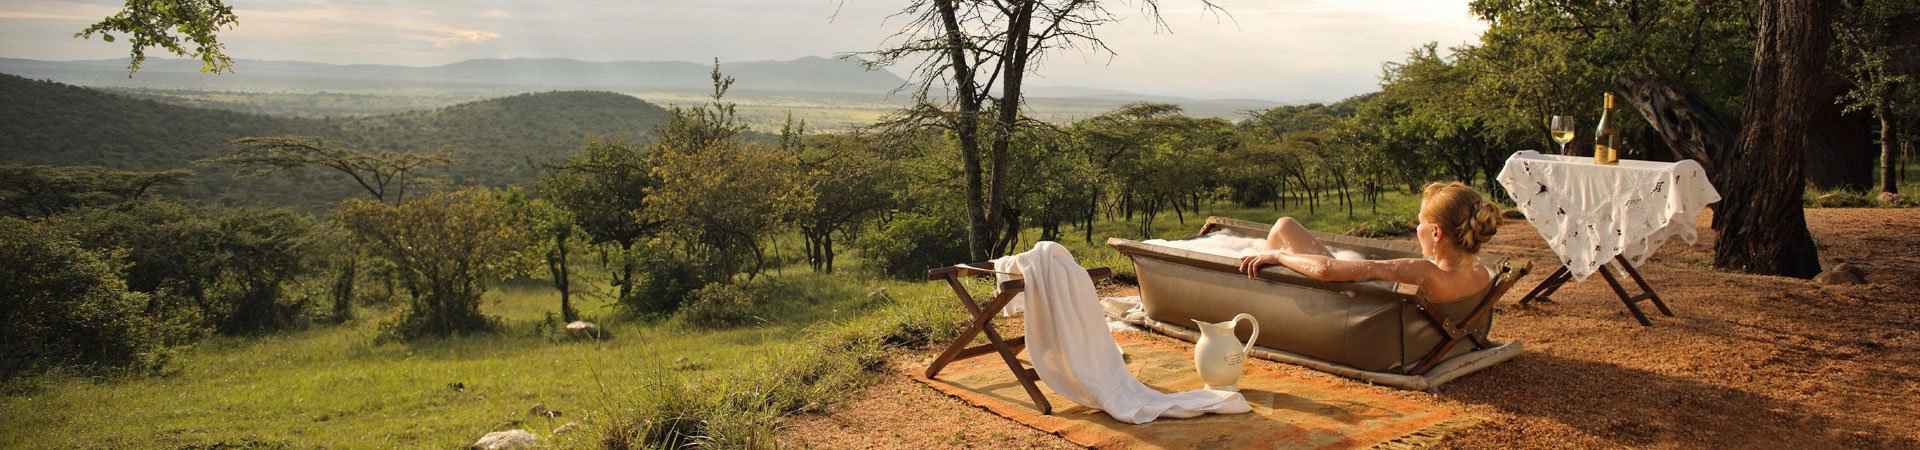 Kenya-Safari-Tour